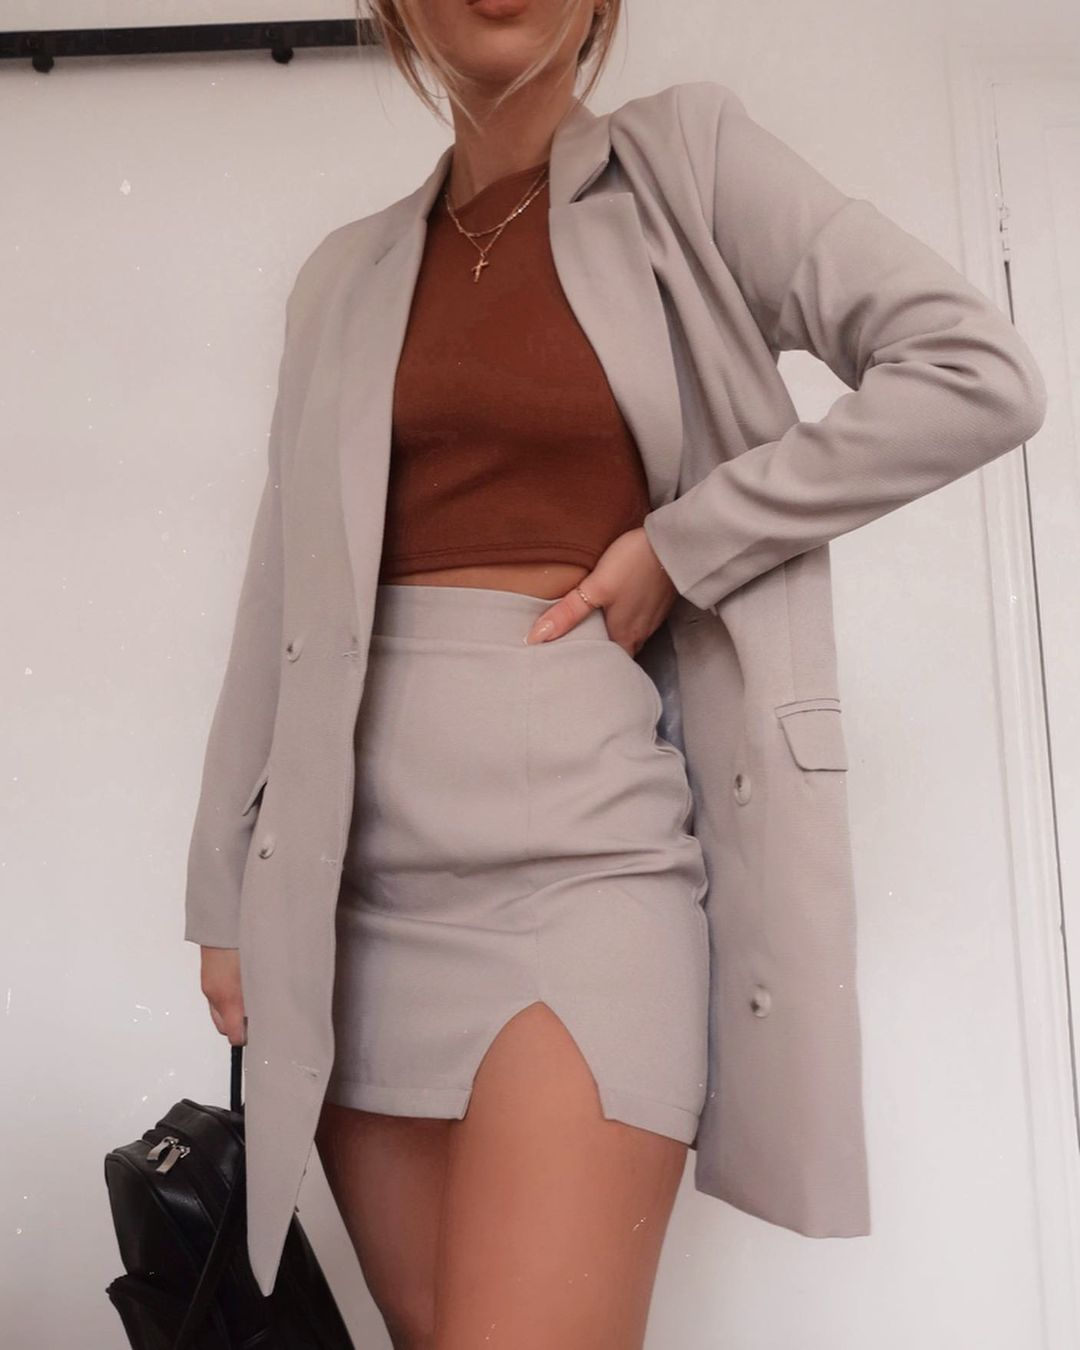 Trendy outfit ideas for woman style in 20 pinterest inspiration ...